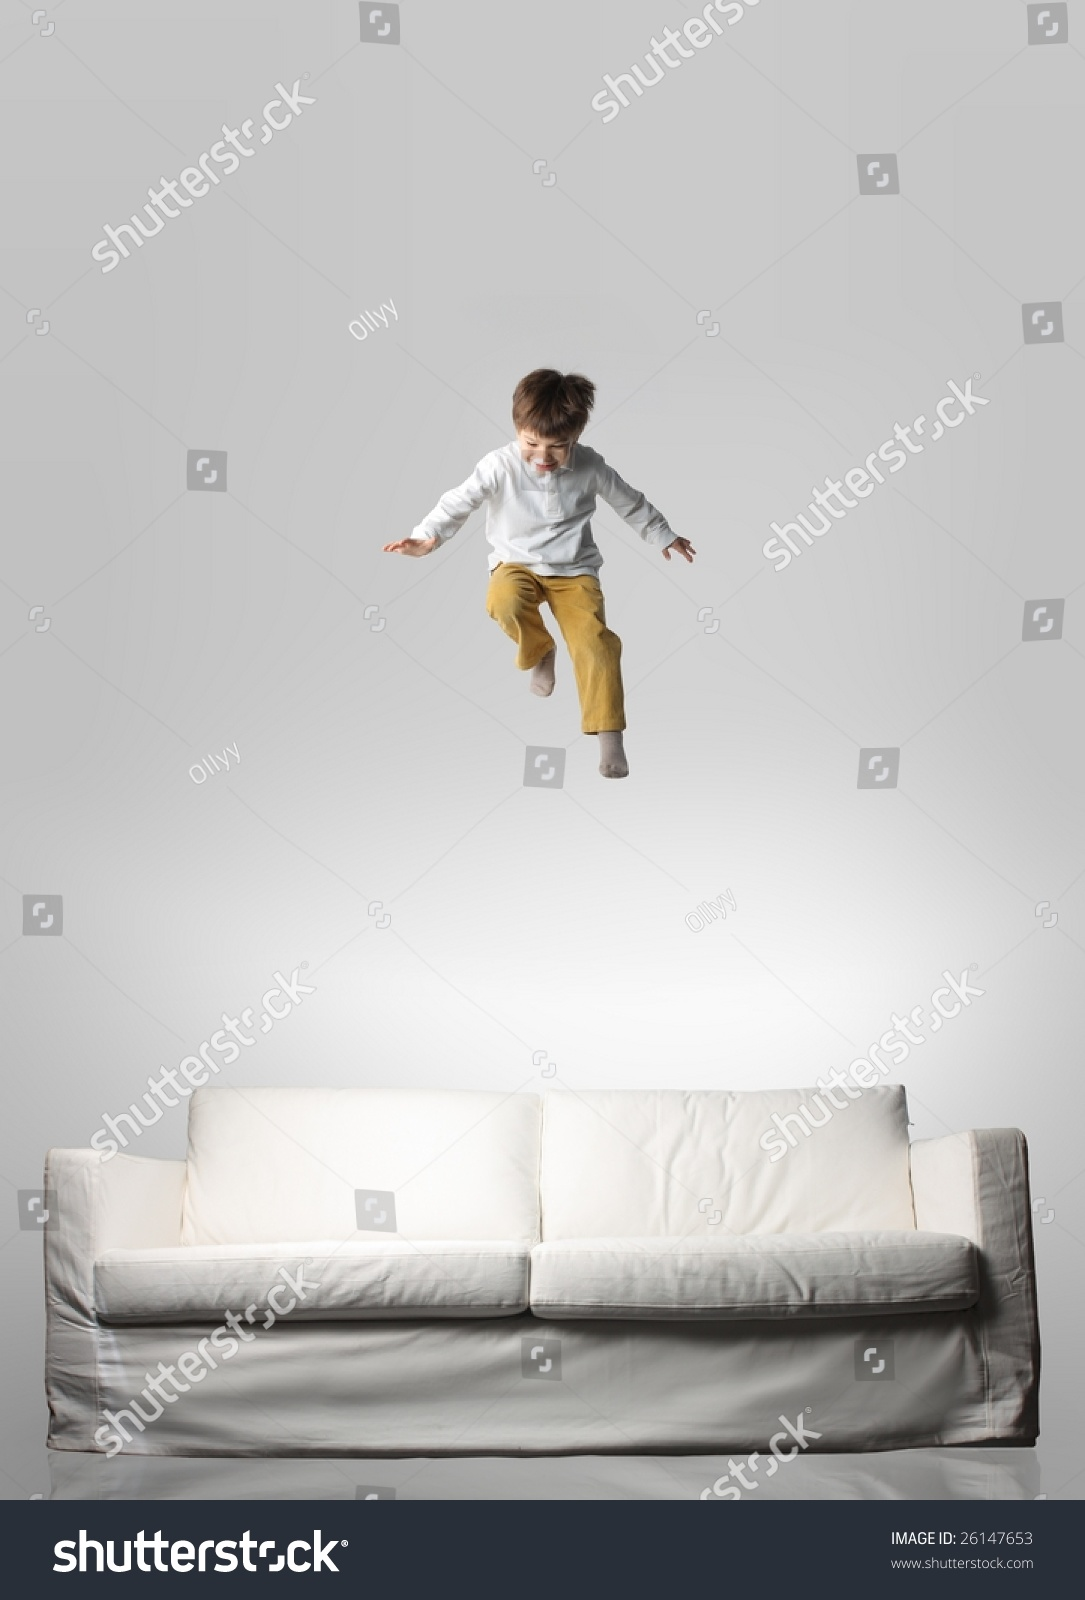 Child Jumping On A Sofa Stock Photo 26147653 Shutterstock